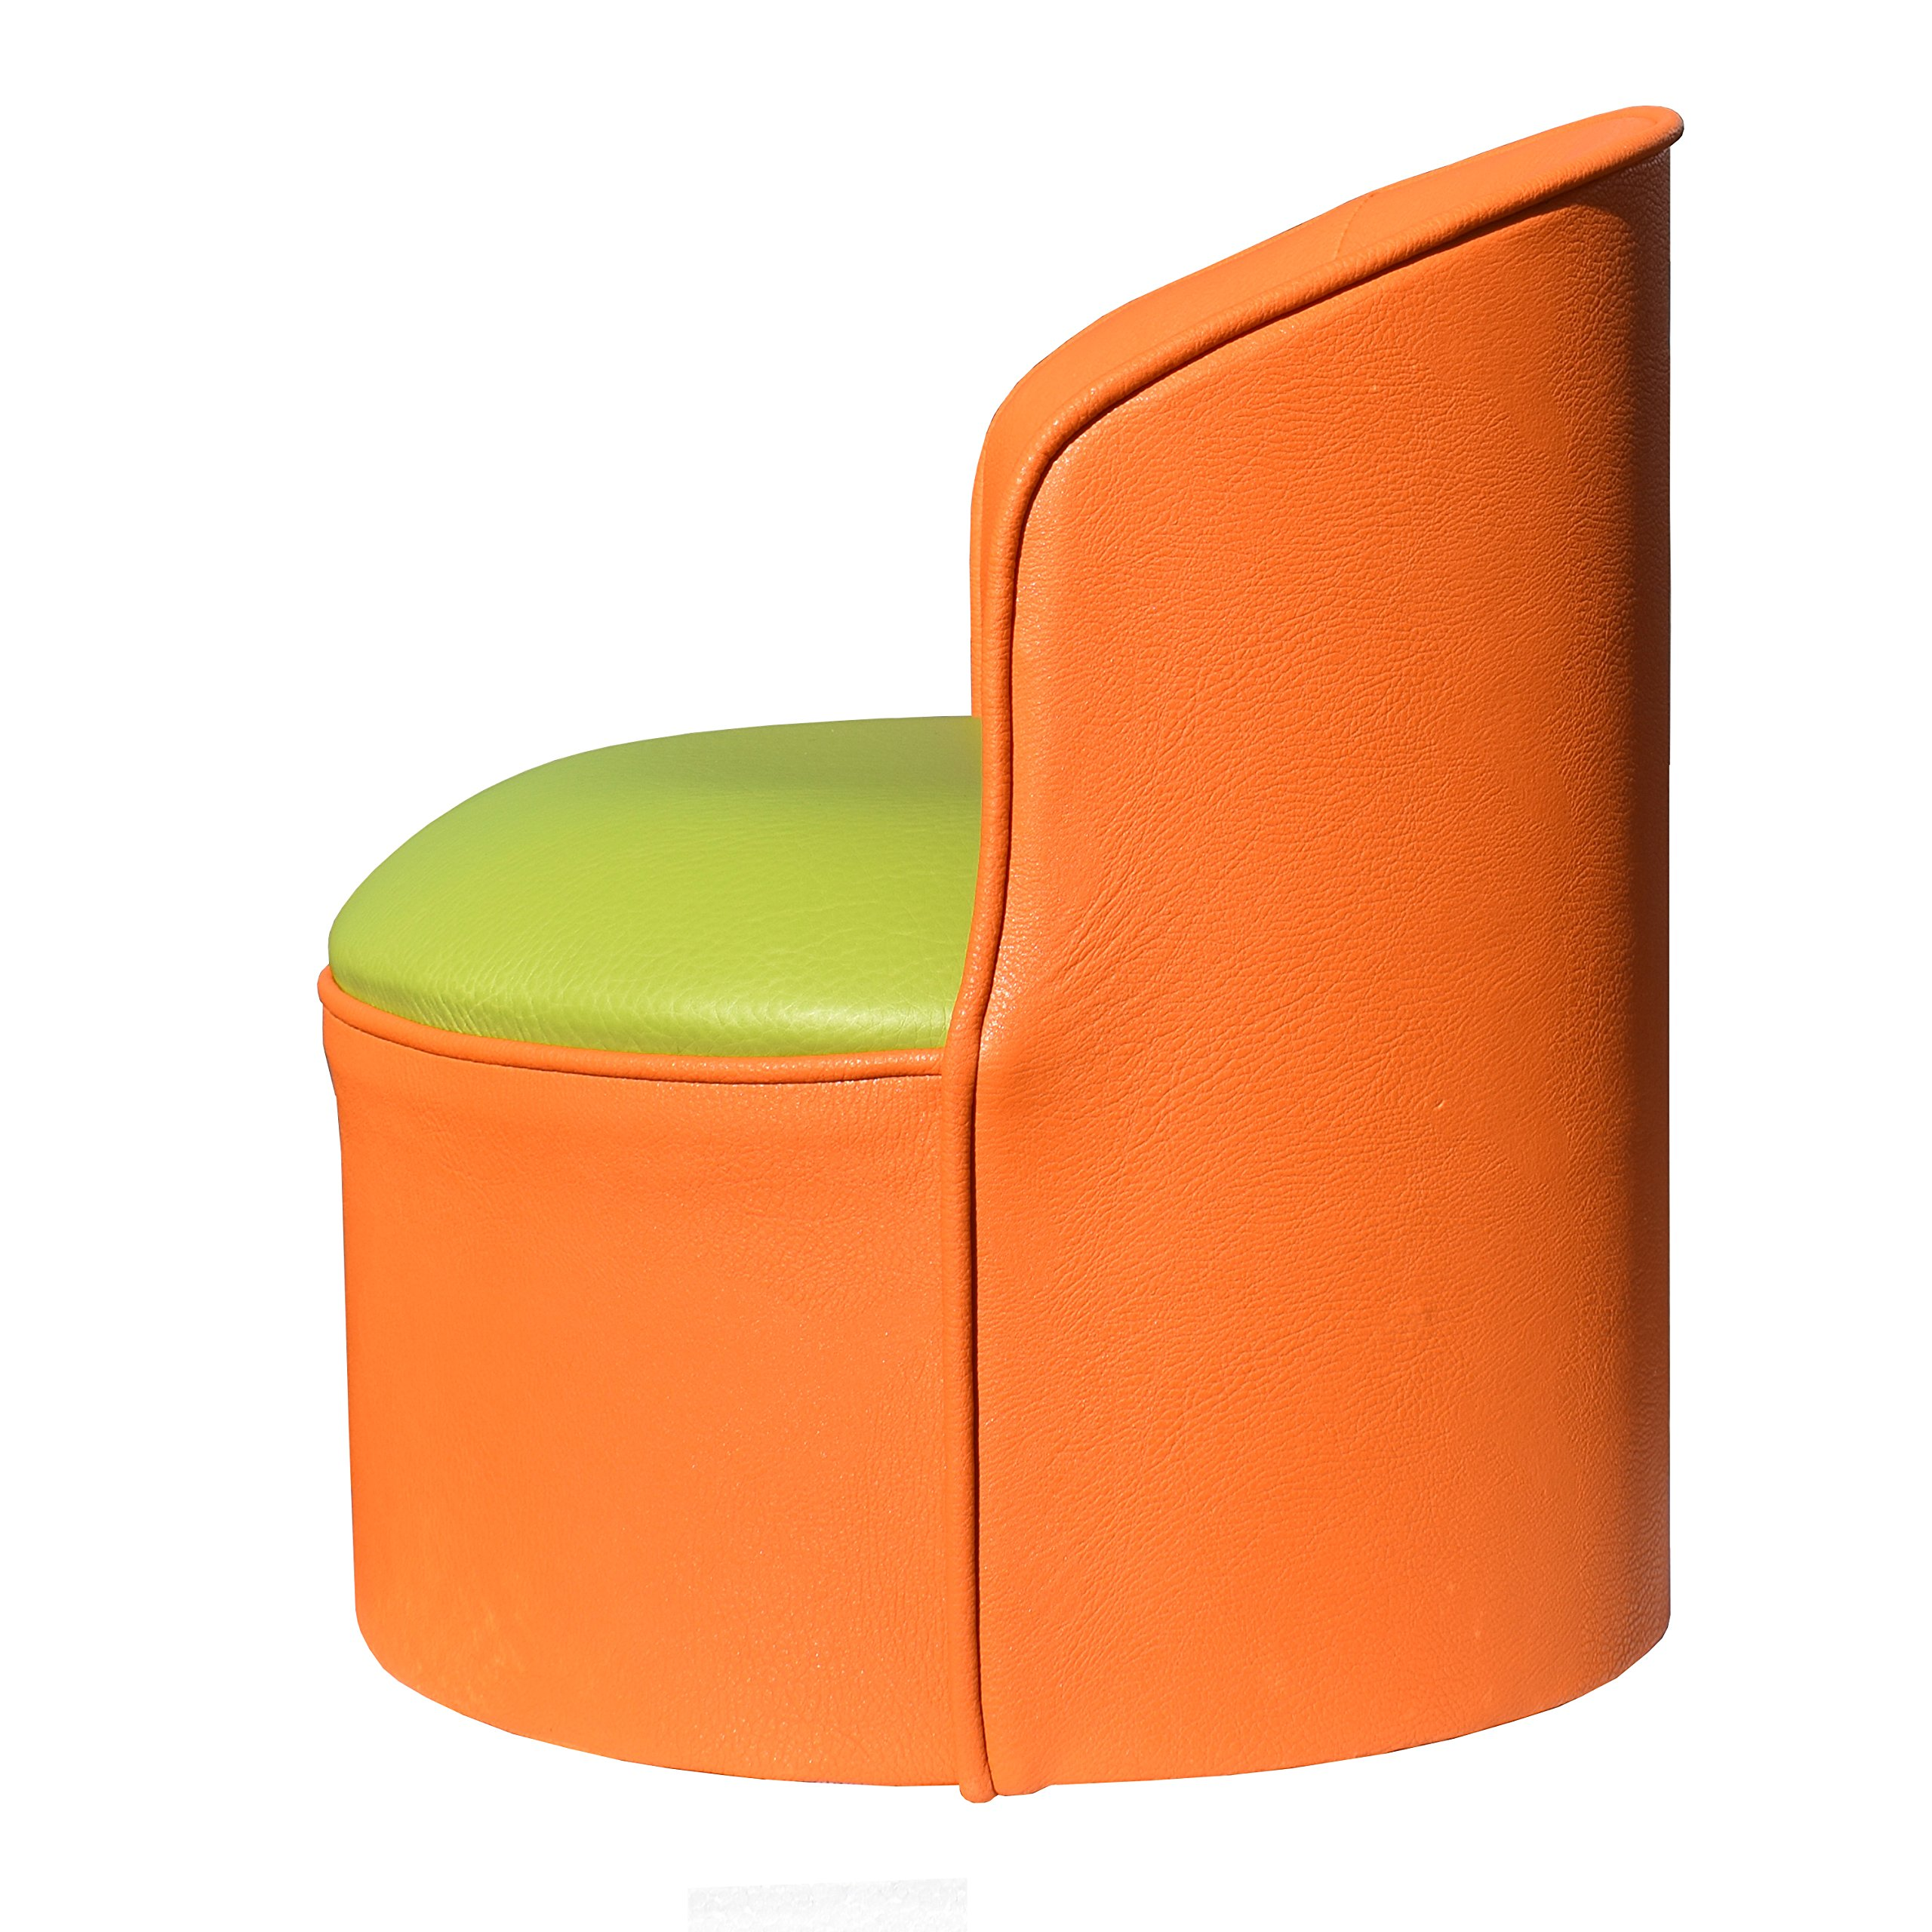 unbrand name Kids Sofa Chair for boy or girl